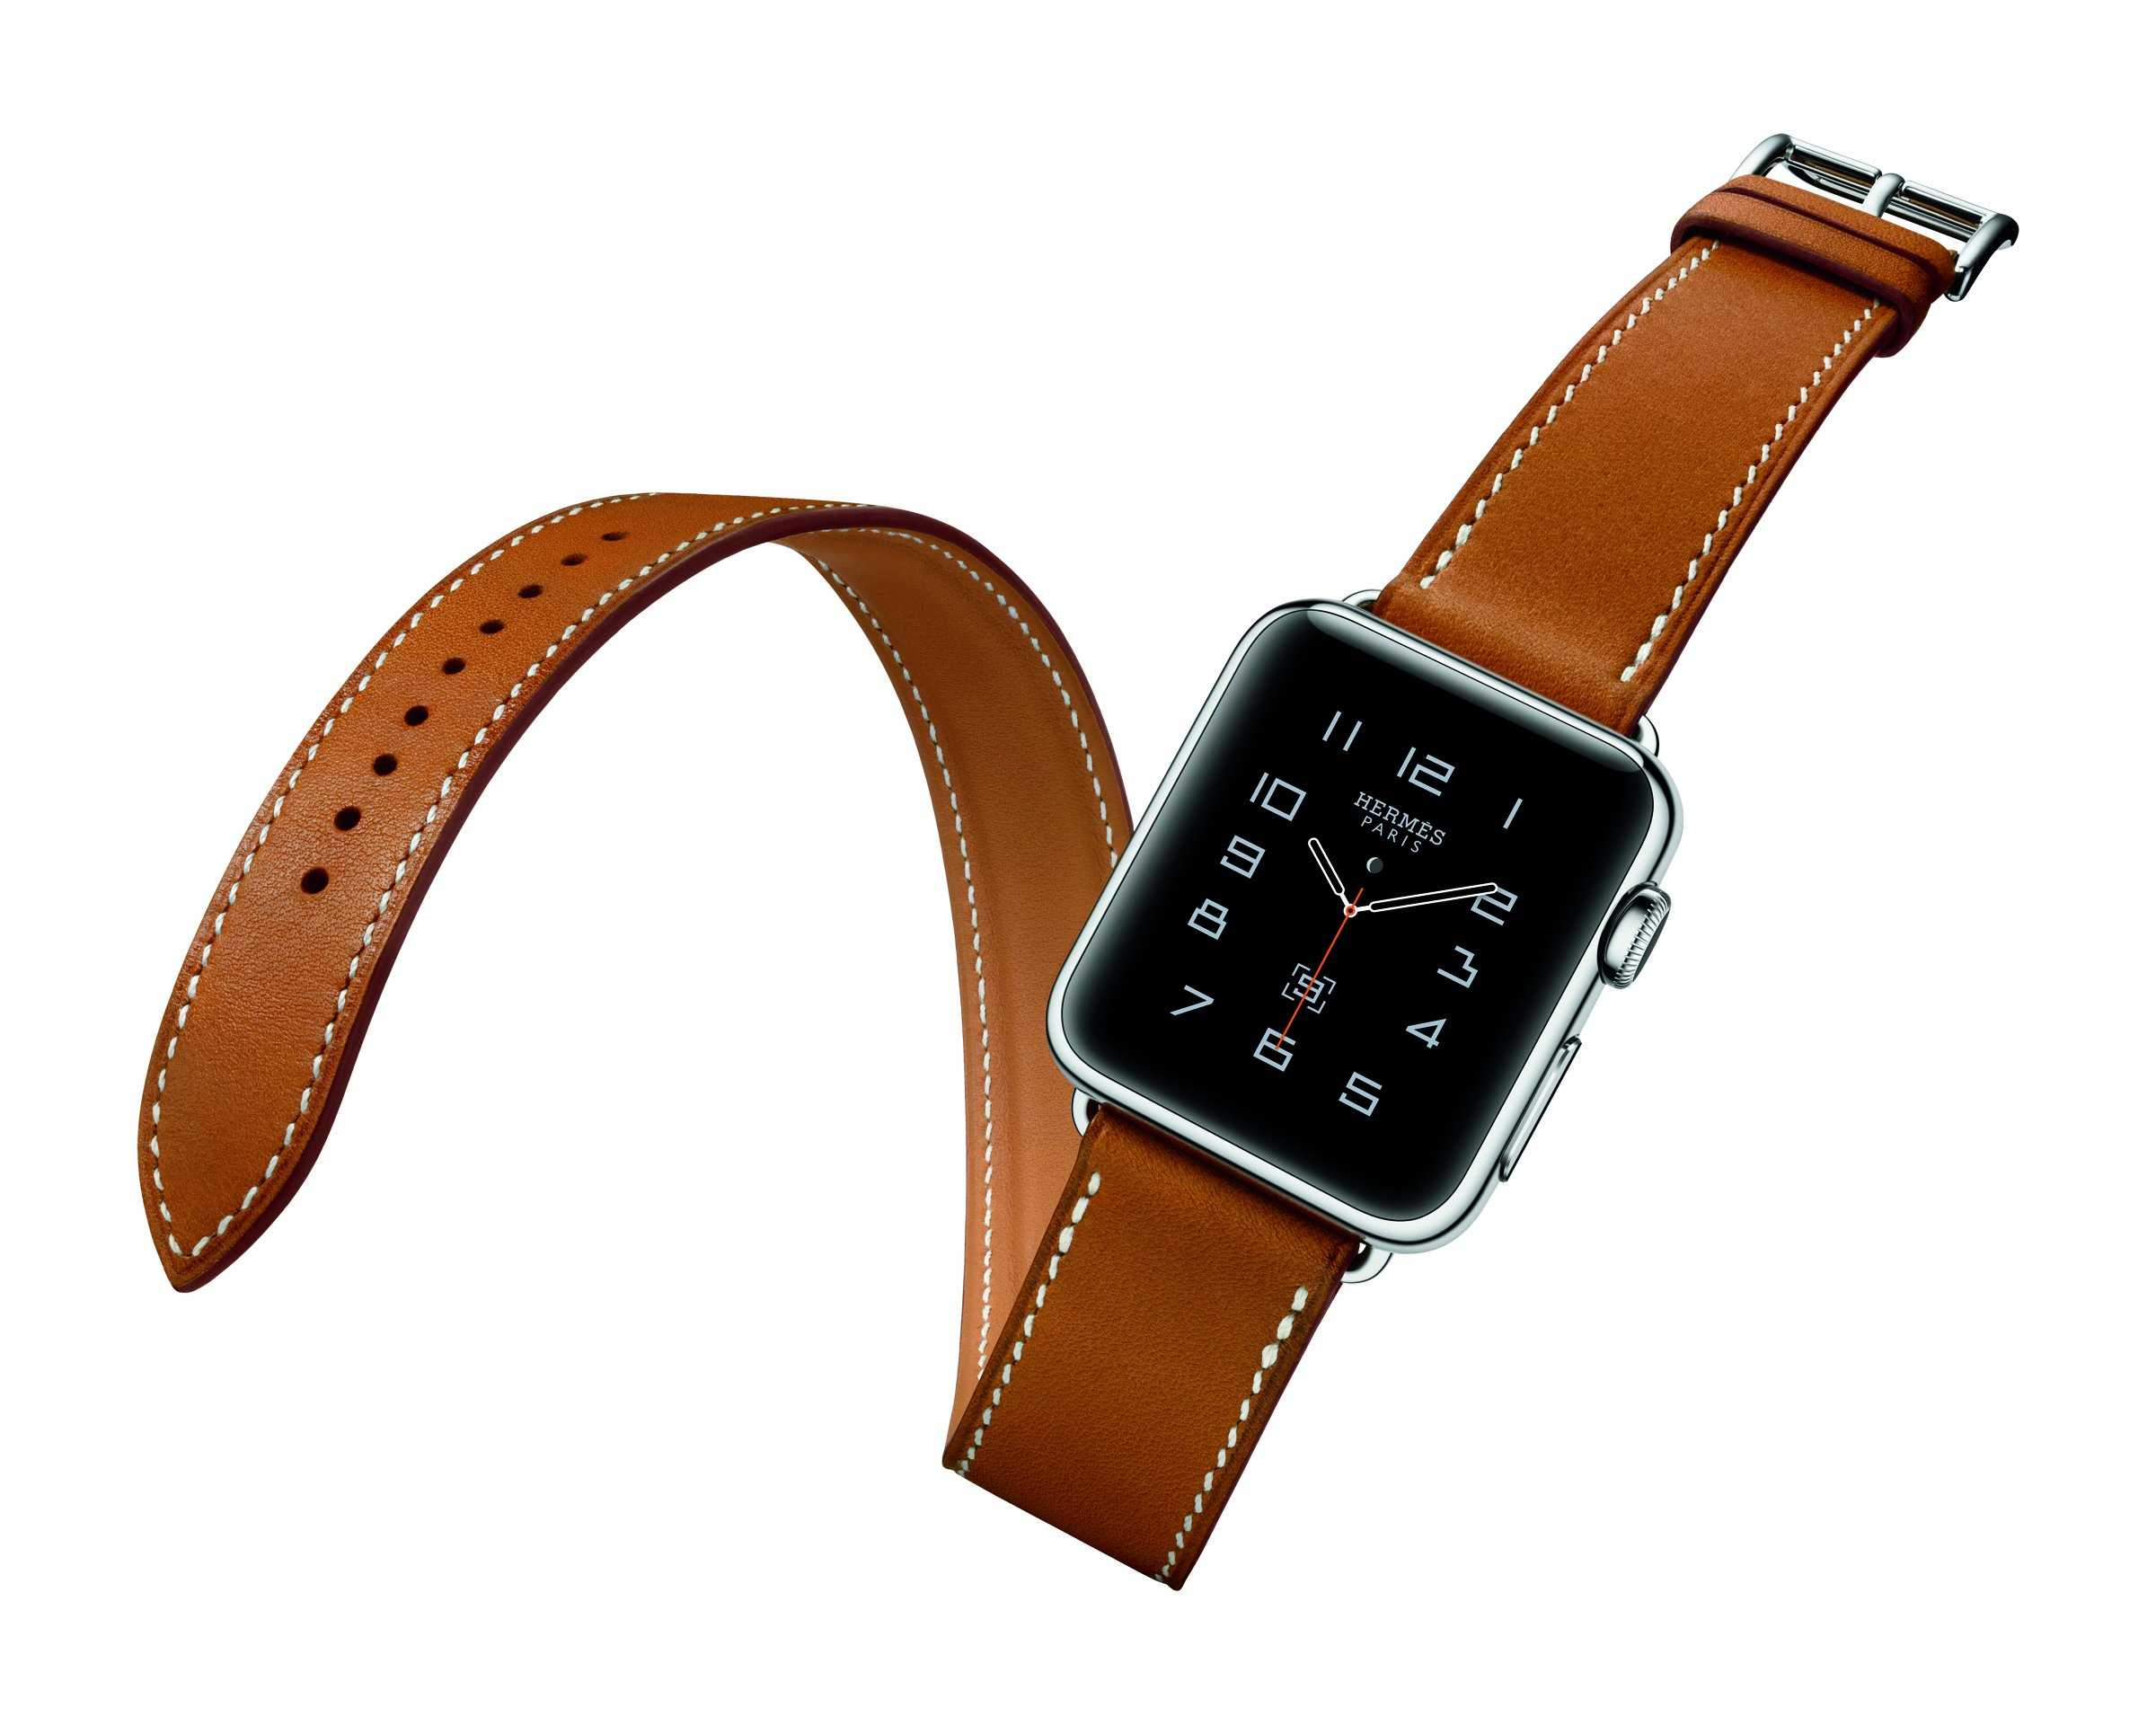 online buy now watch psa hermes apple the s can you watches herm